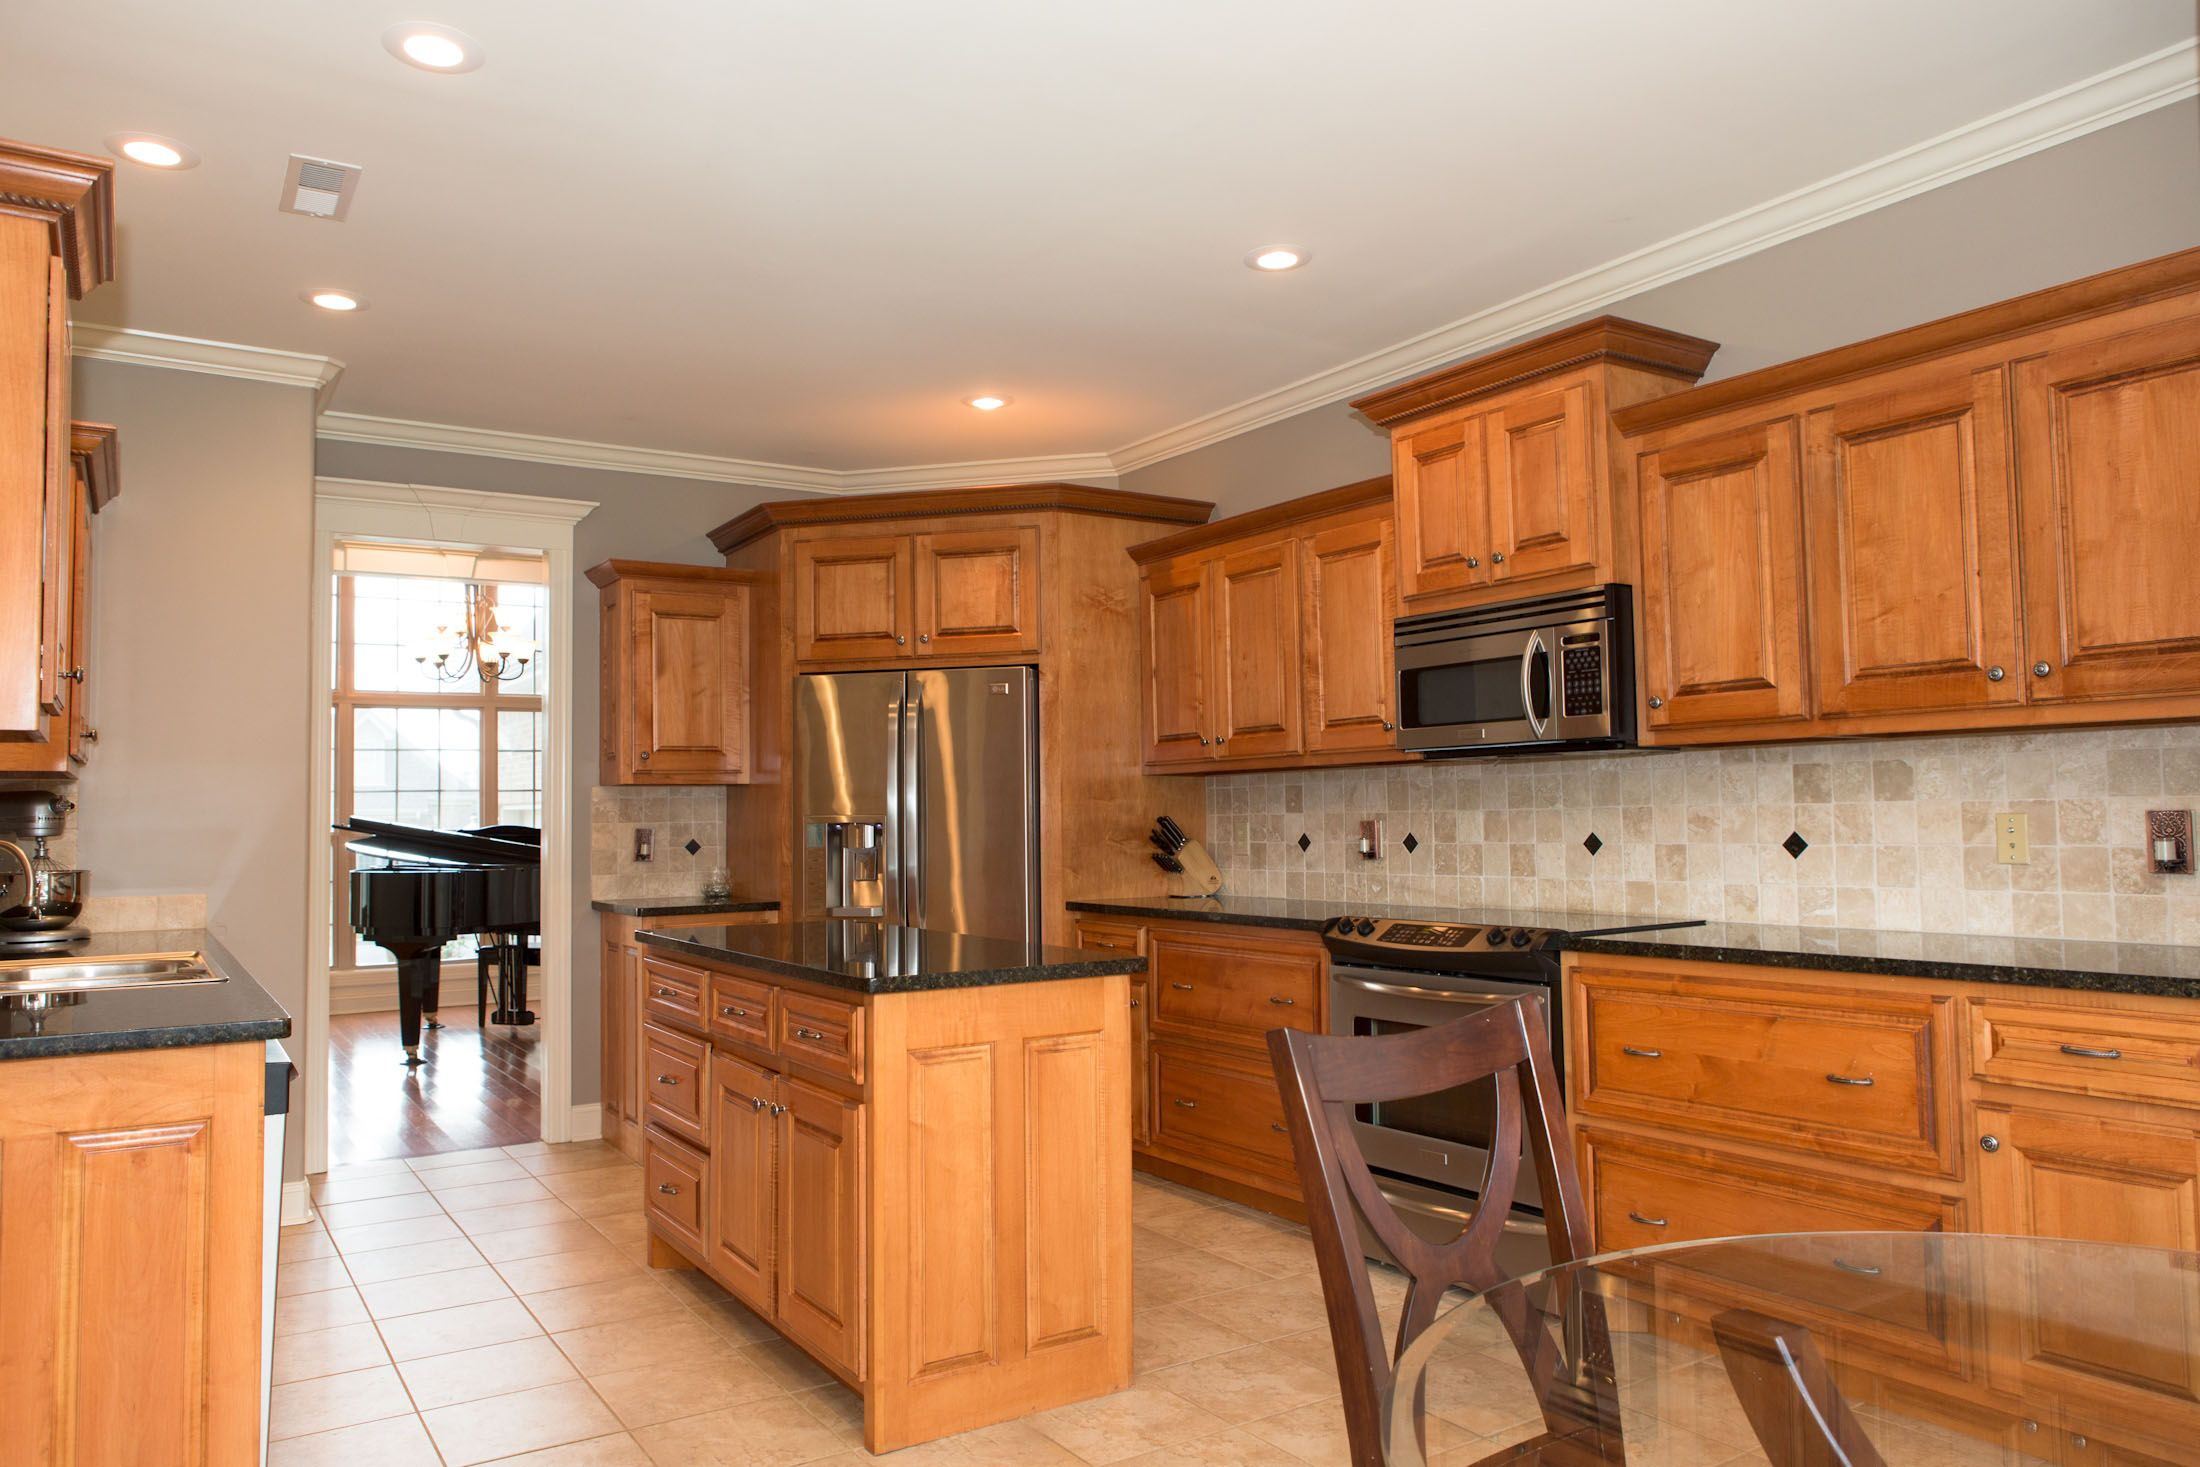 Kitchen w/ Maple Cabinets with Cherry Stain and Mocha ... on What Color Granite Goes With Honey Maple Cabinets  id=59585